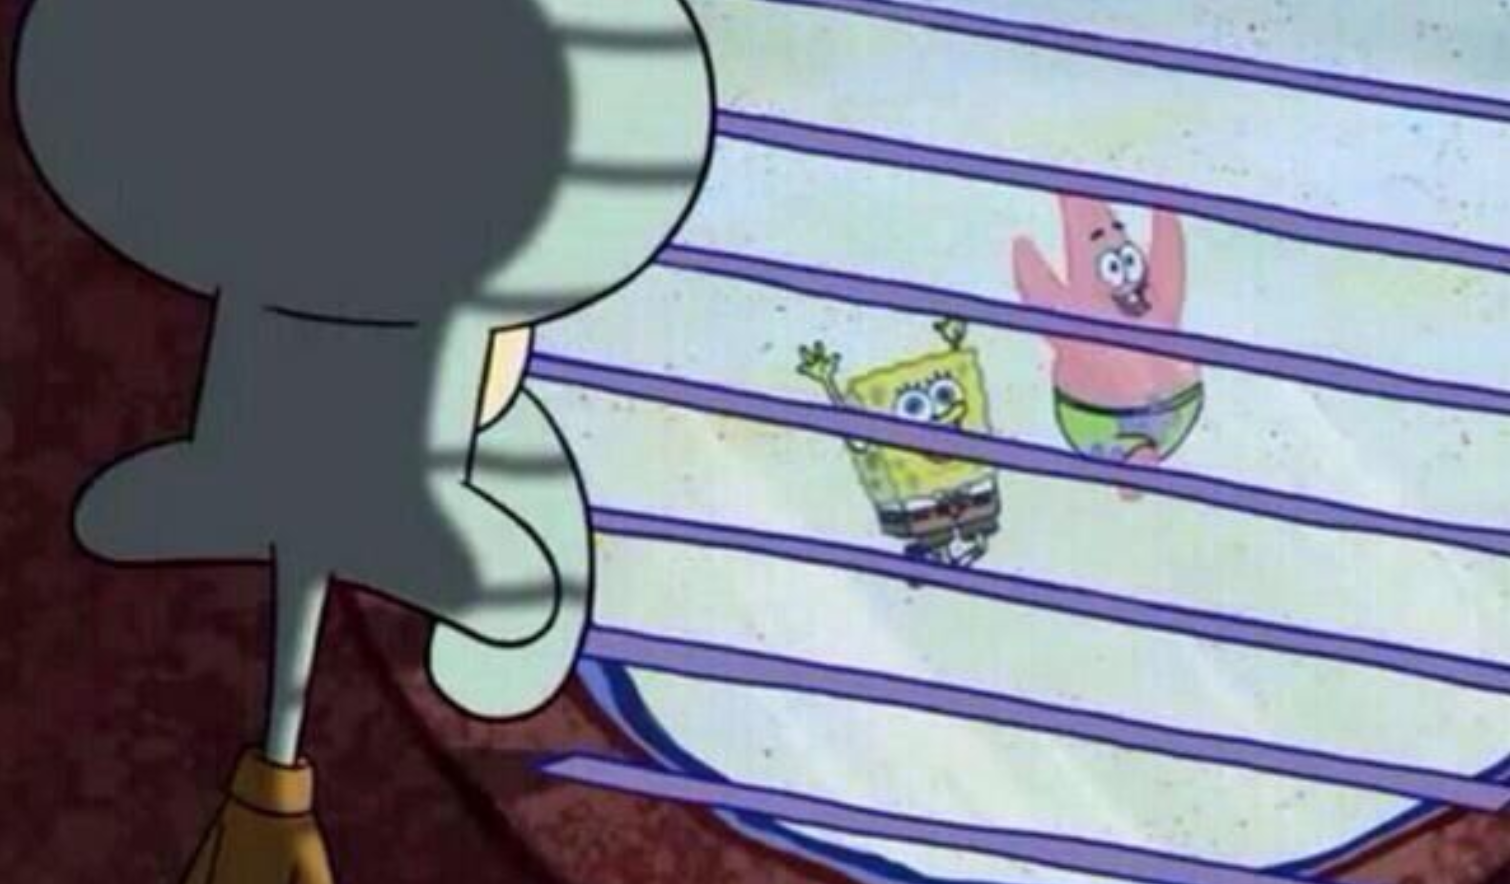 Squidward looking out the window